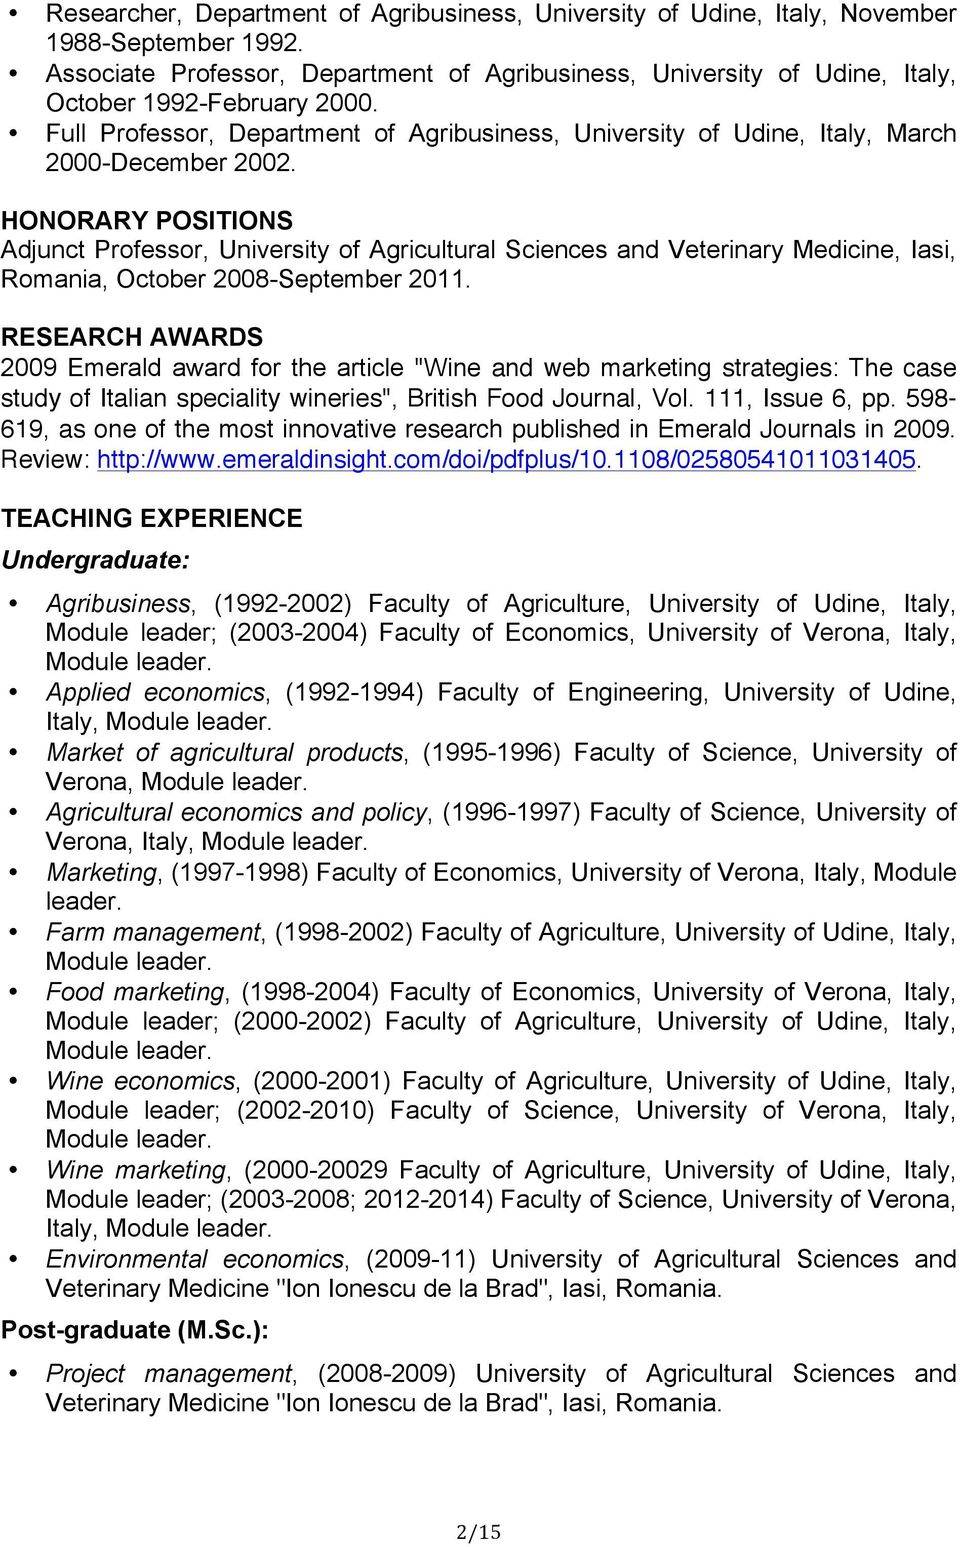 Full Professor, Department of Agribusiness, University of Udine, Italy, March 2000-December 2002.